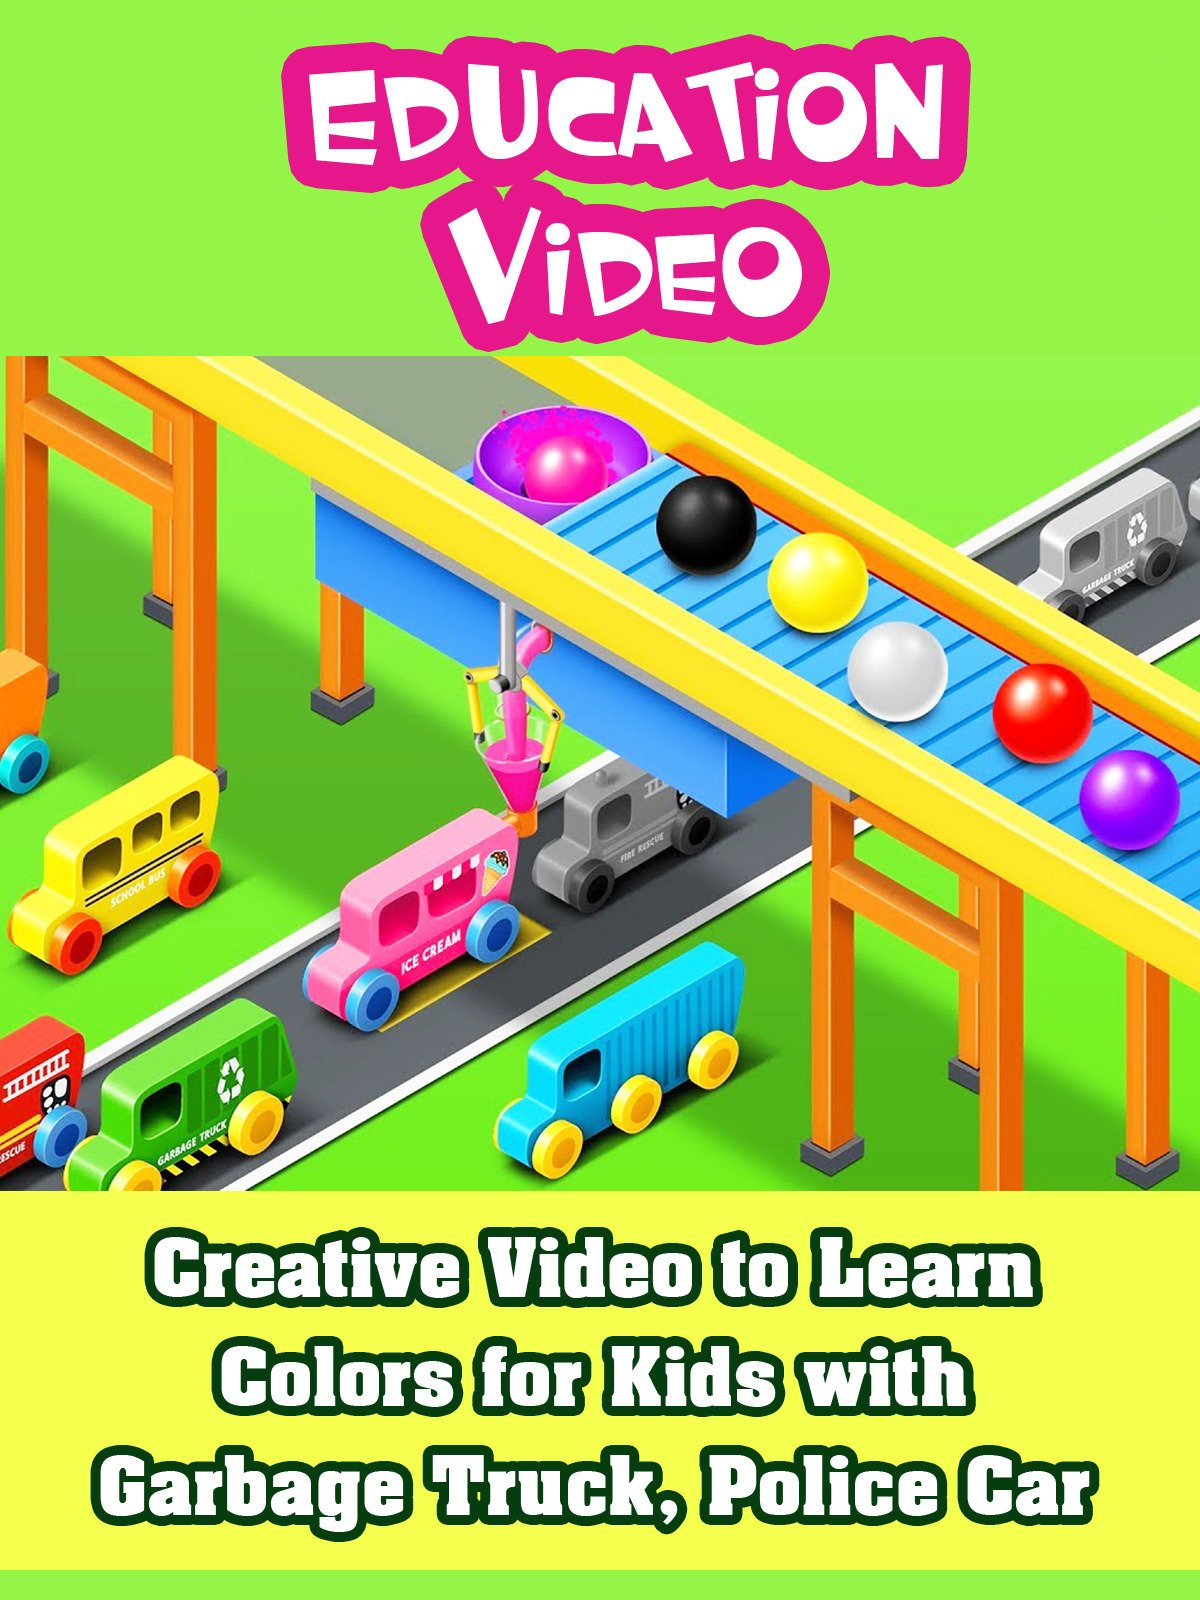 Creative Video to Learn Colors for Kids with Garbage Truck, Police Car